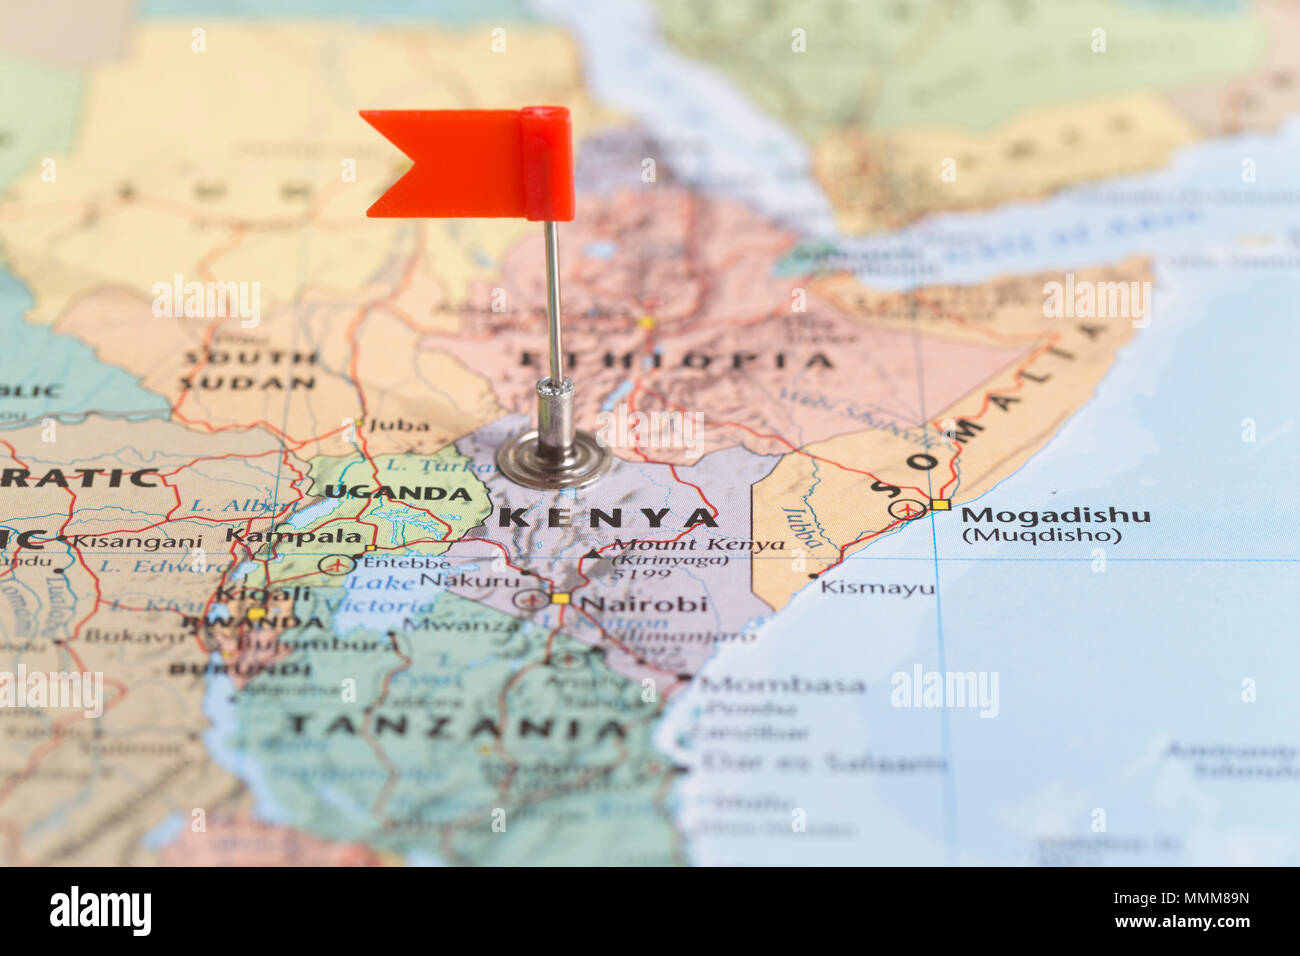 Small red flag marking the African country of Kenya on a world map on liberia world map, tanzania world map, turkey world map, jamaica world map, rwanda world map, malawi world map, madagascar world map, ethiopia world map, africa world map, indonesia world map, uae world map, portugal world map, lesotho world map, guatemala world map, nigeria world map, iran world map, uganda world map, algeria world map, kuwait world map, mozambique world map,